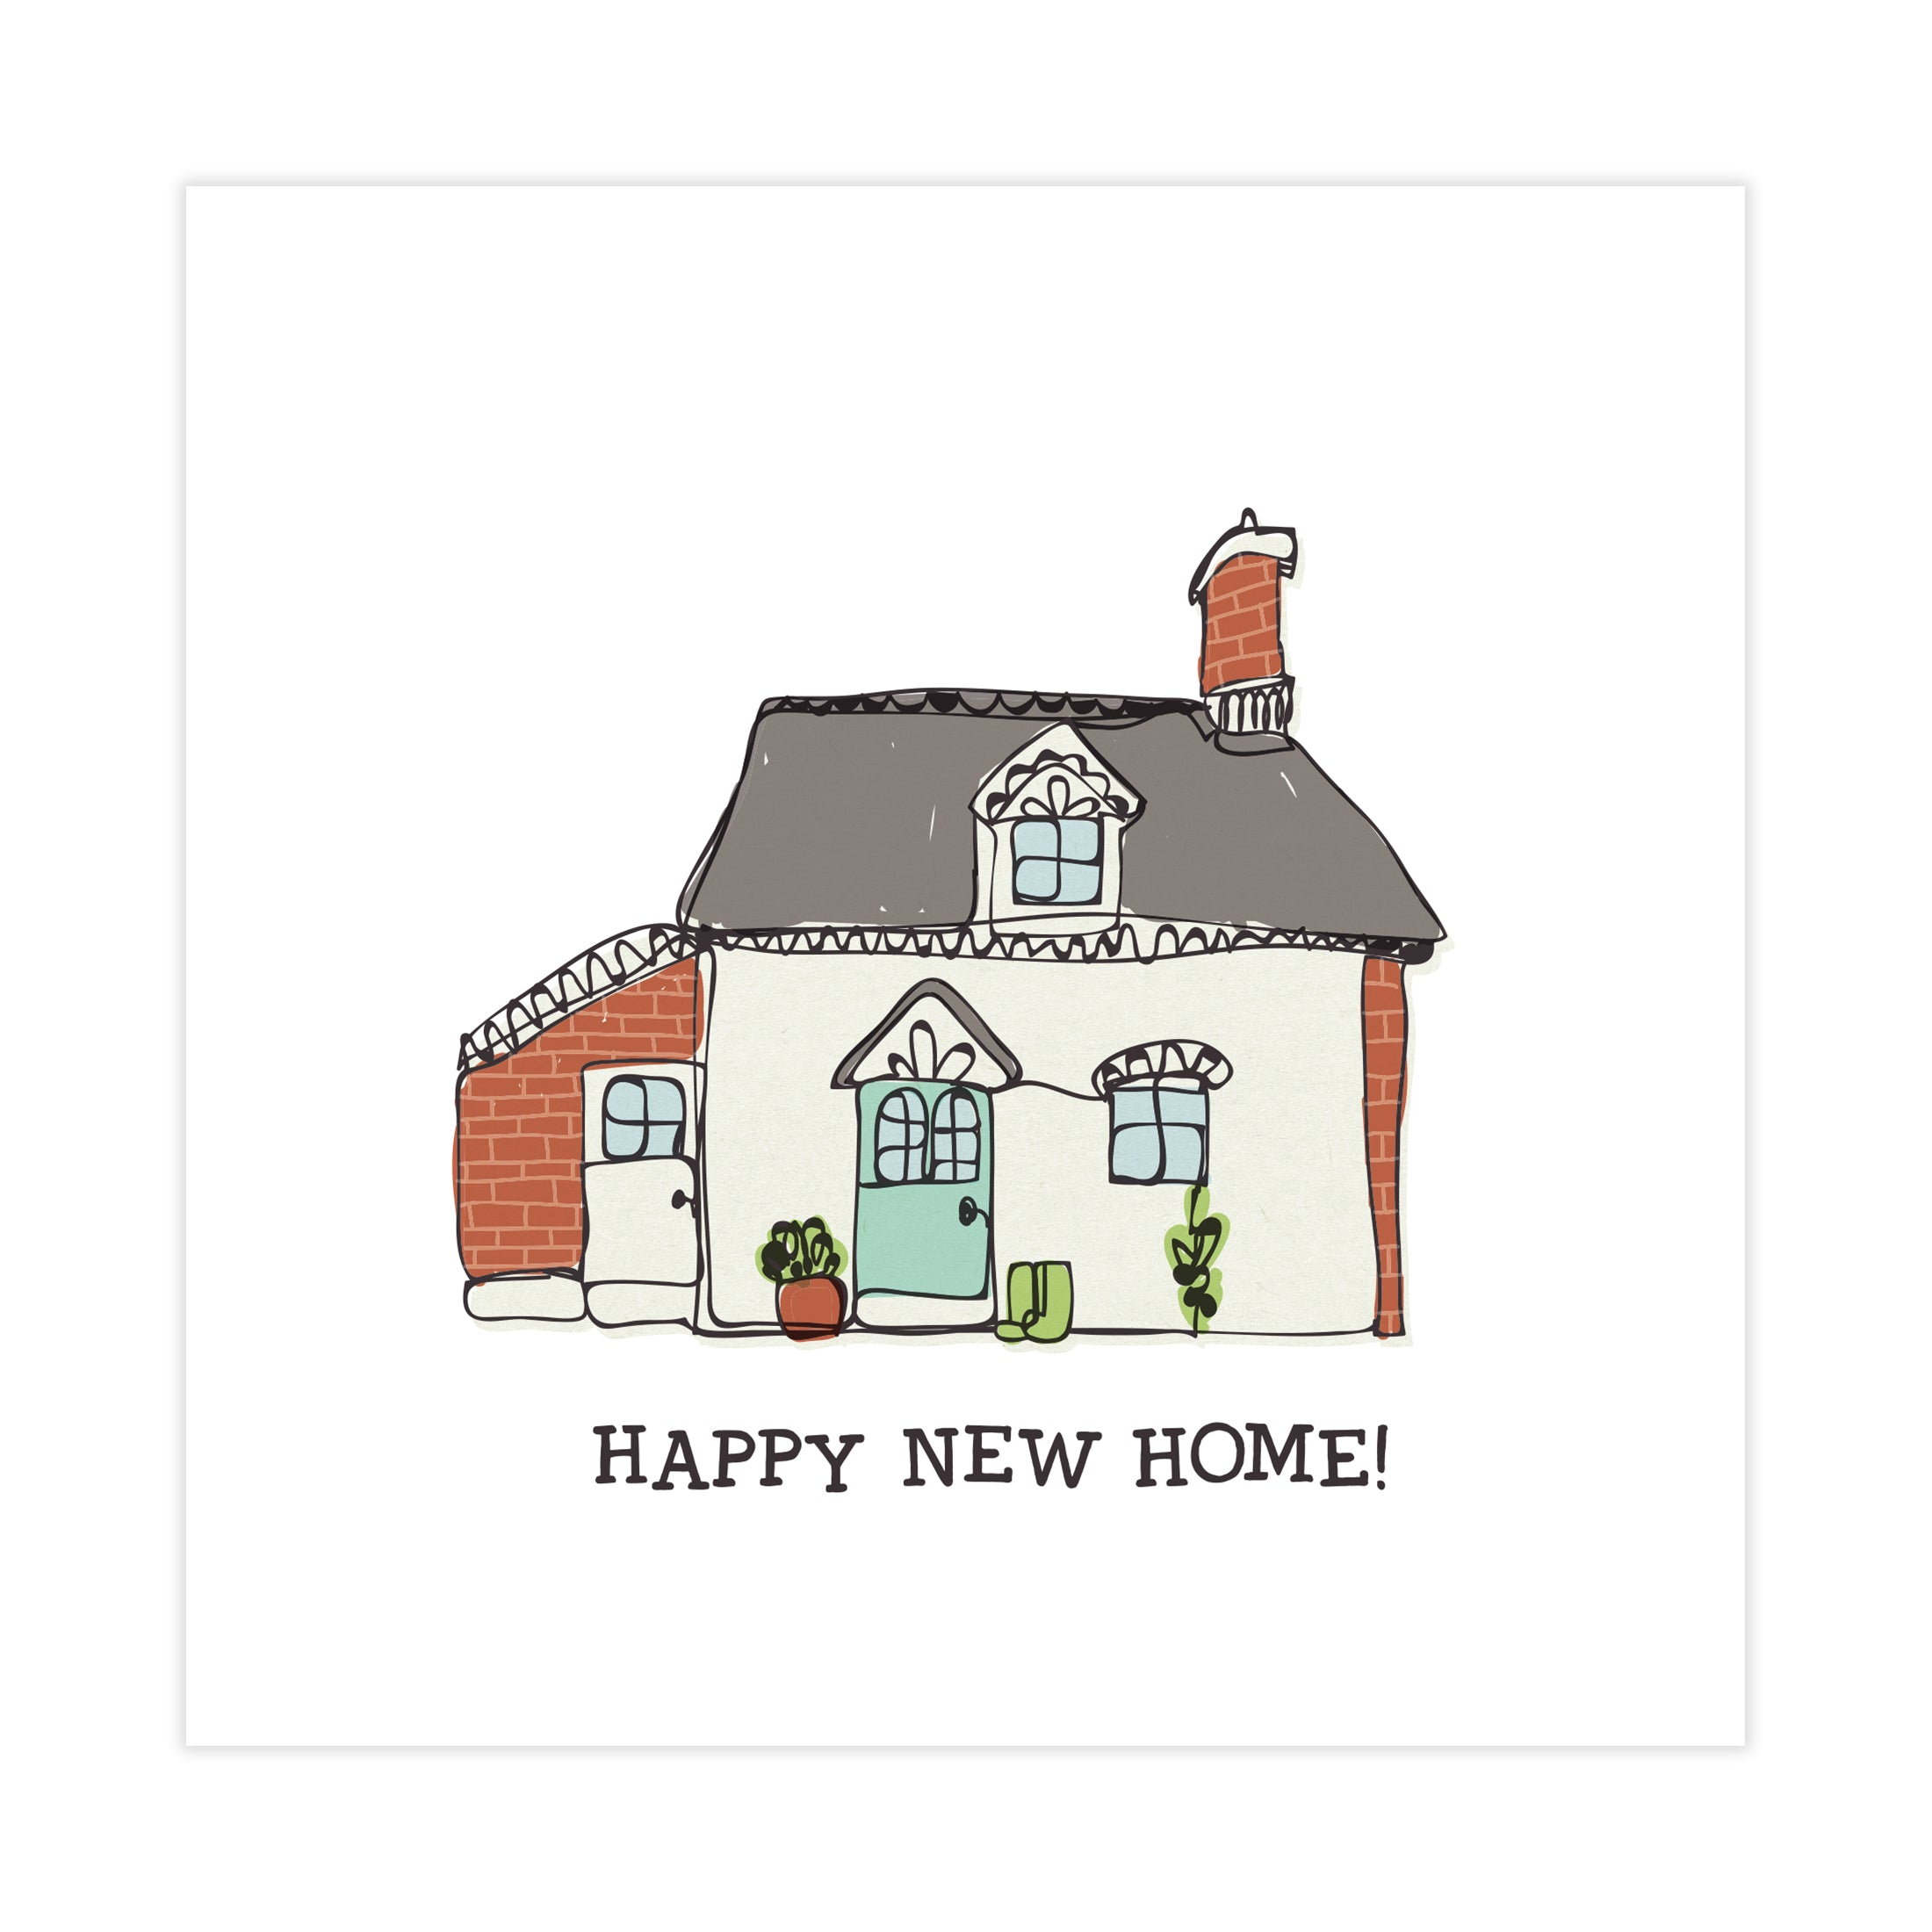 Happy New Home! - New Home Card